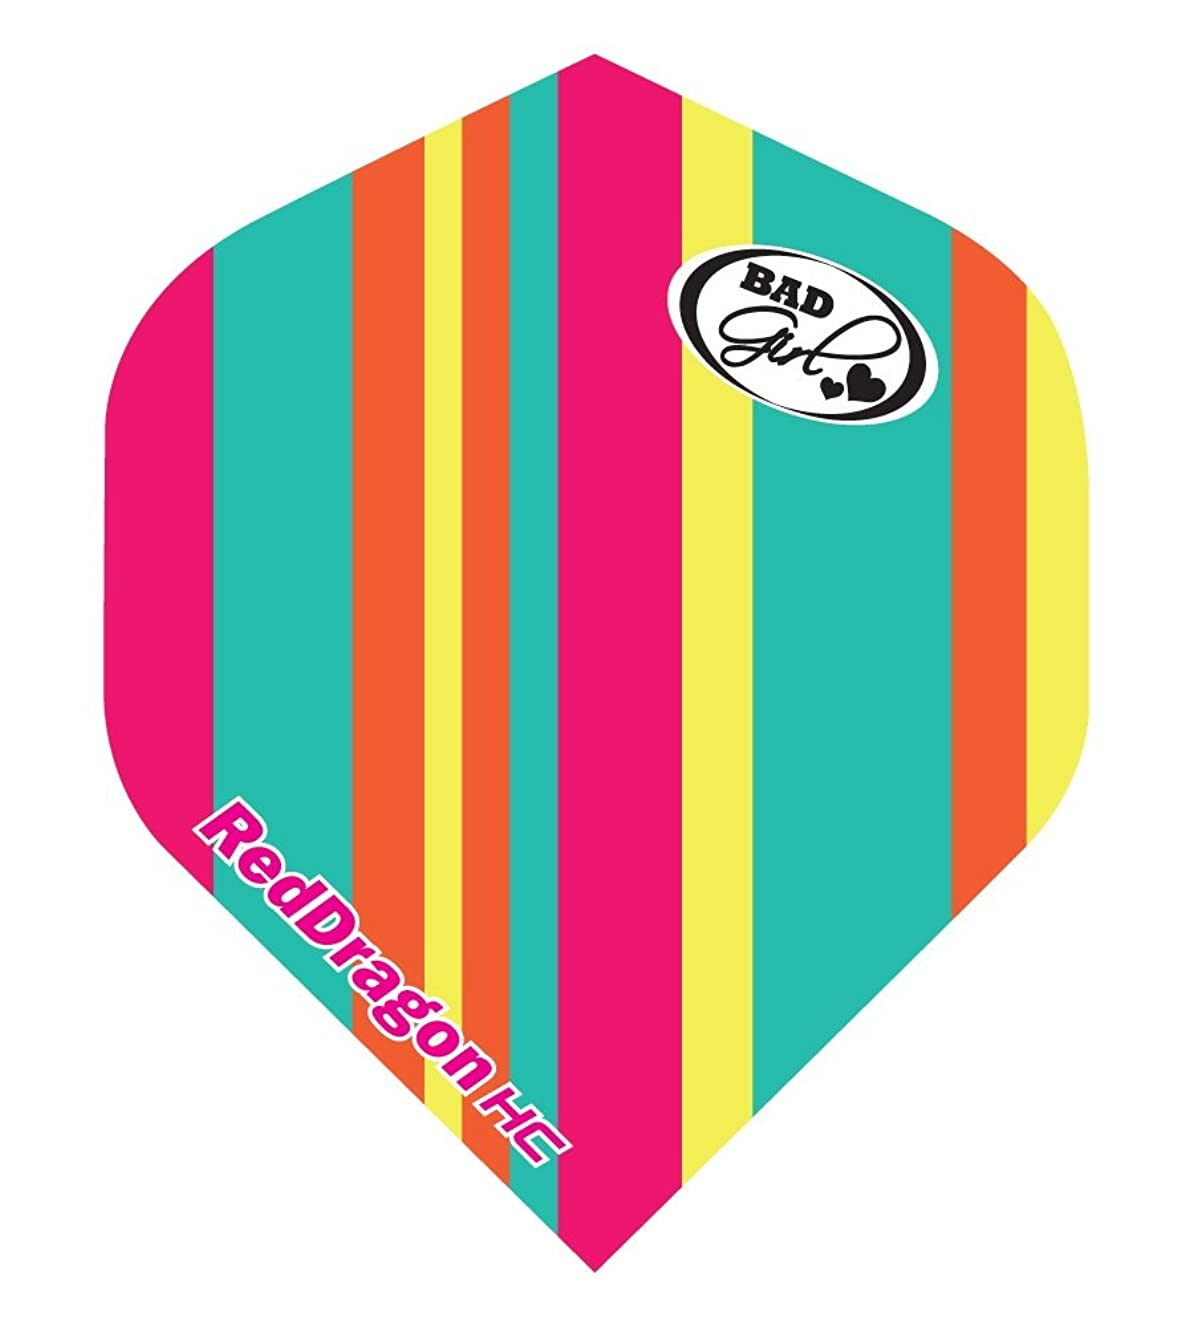 Hardcore Bad Girls Fruity Stripes Extra Thick Standard Dart Flights - 5 sets Per Pack (15 Dart Flights in total) & Red Dragon Checkout Card